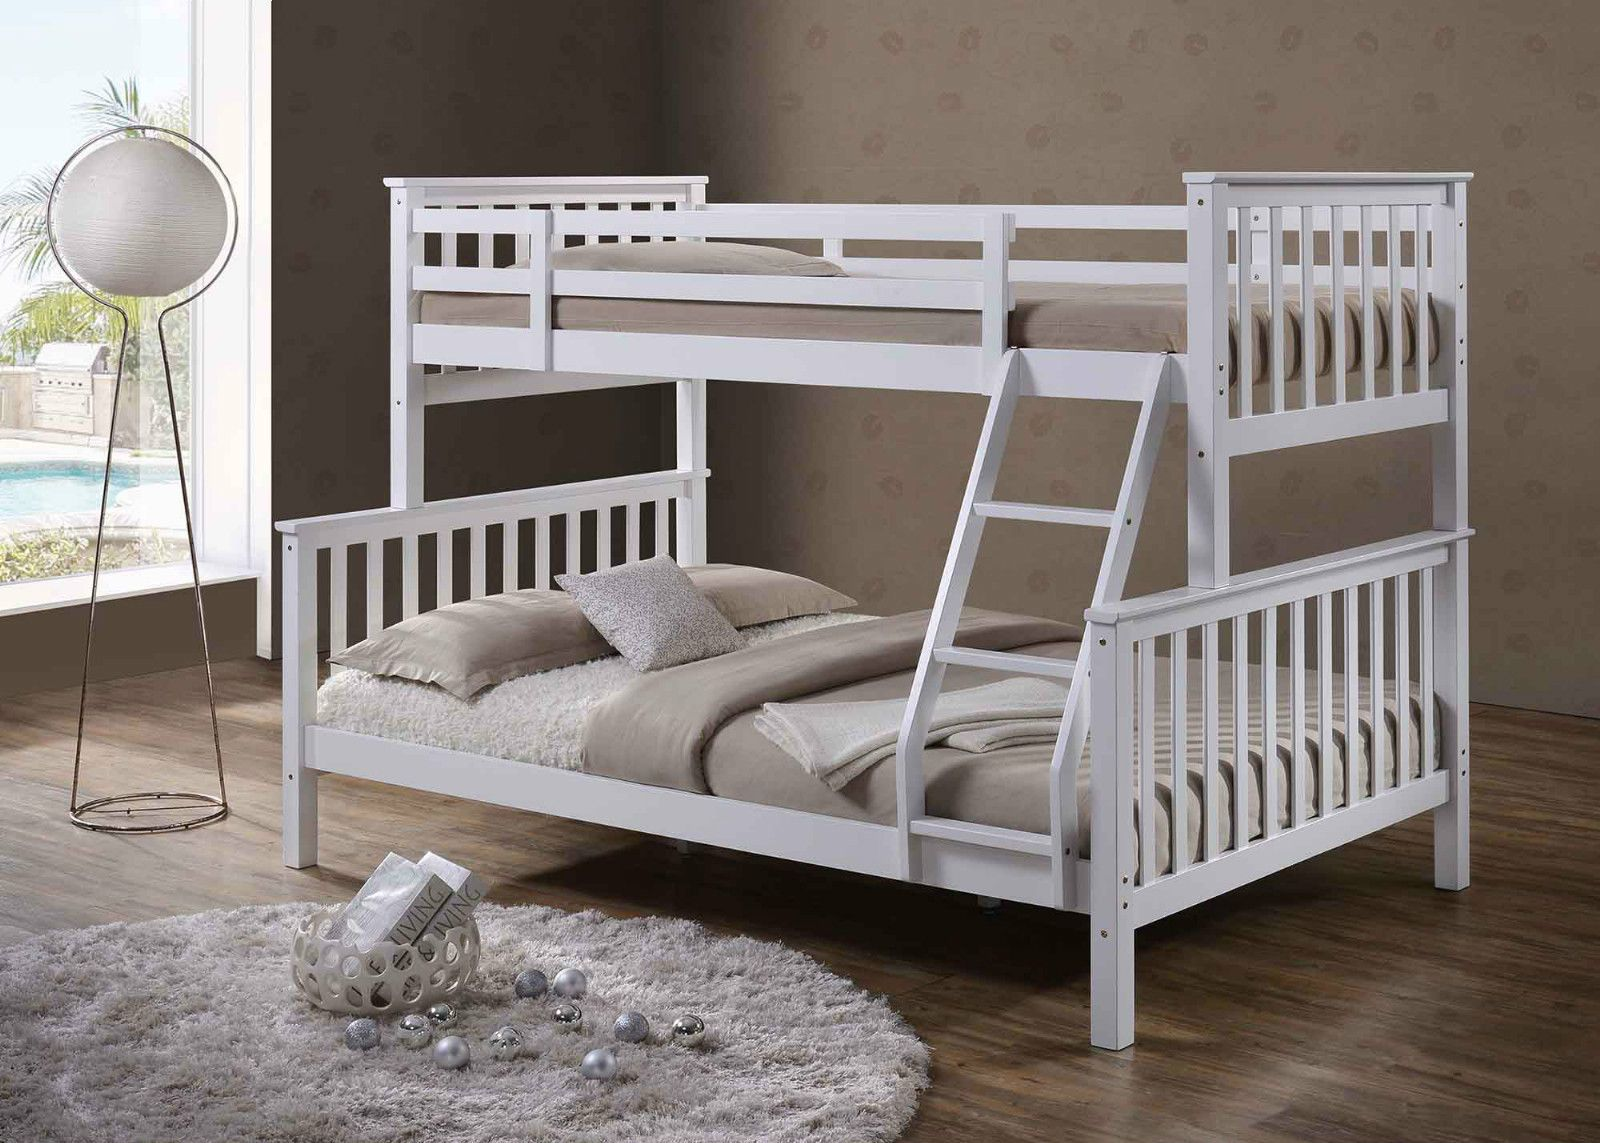 White Solid Wooden Wood Pine Triple Sleeper Bunk Bed Double Single Size In Home Furniture Diy Beds Mattresses Ebay